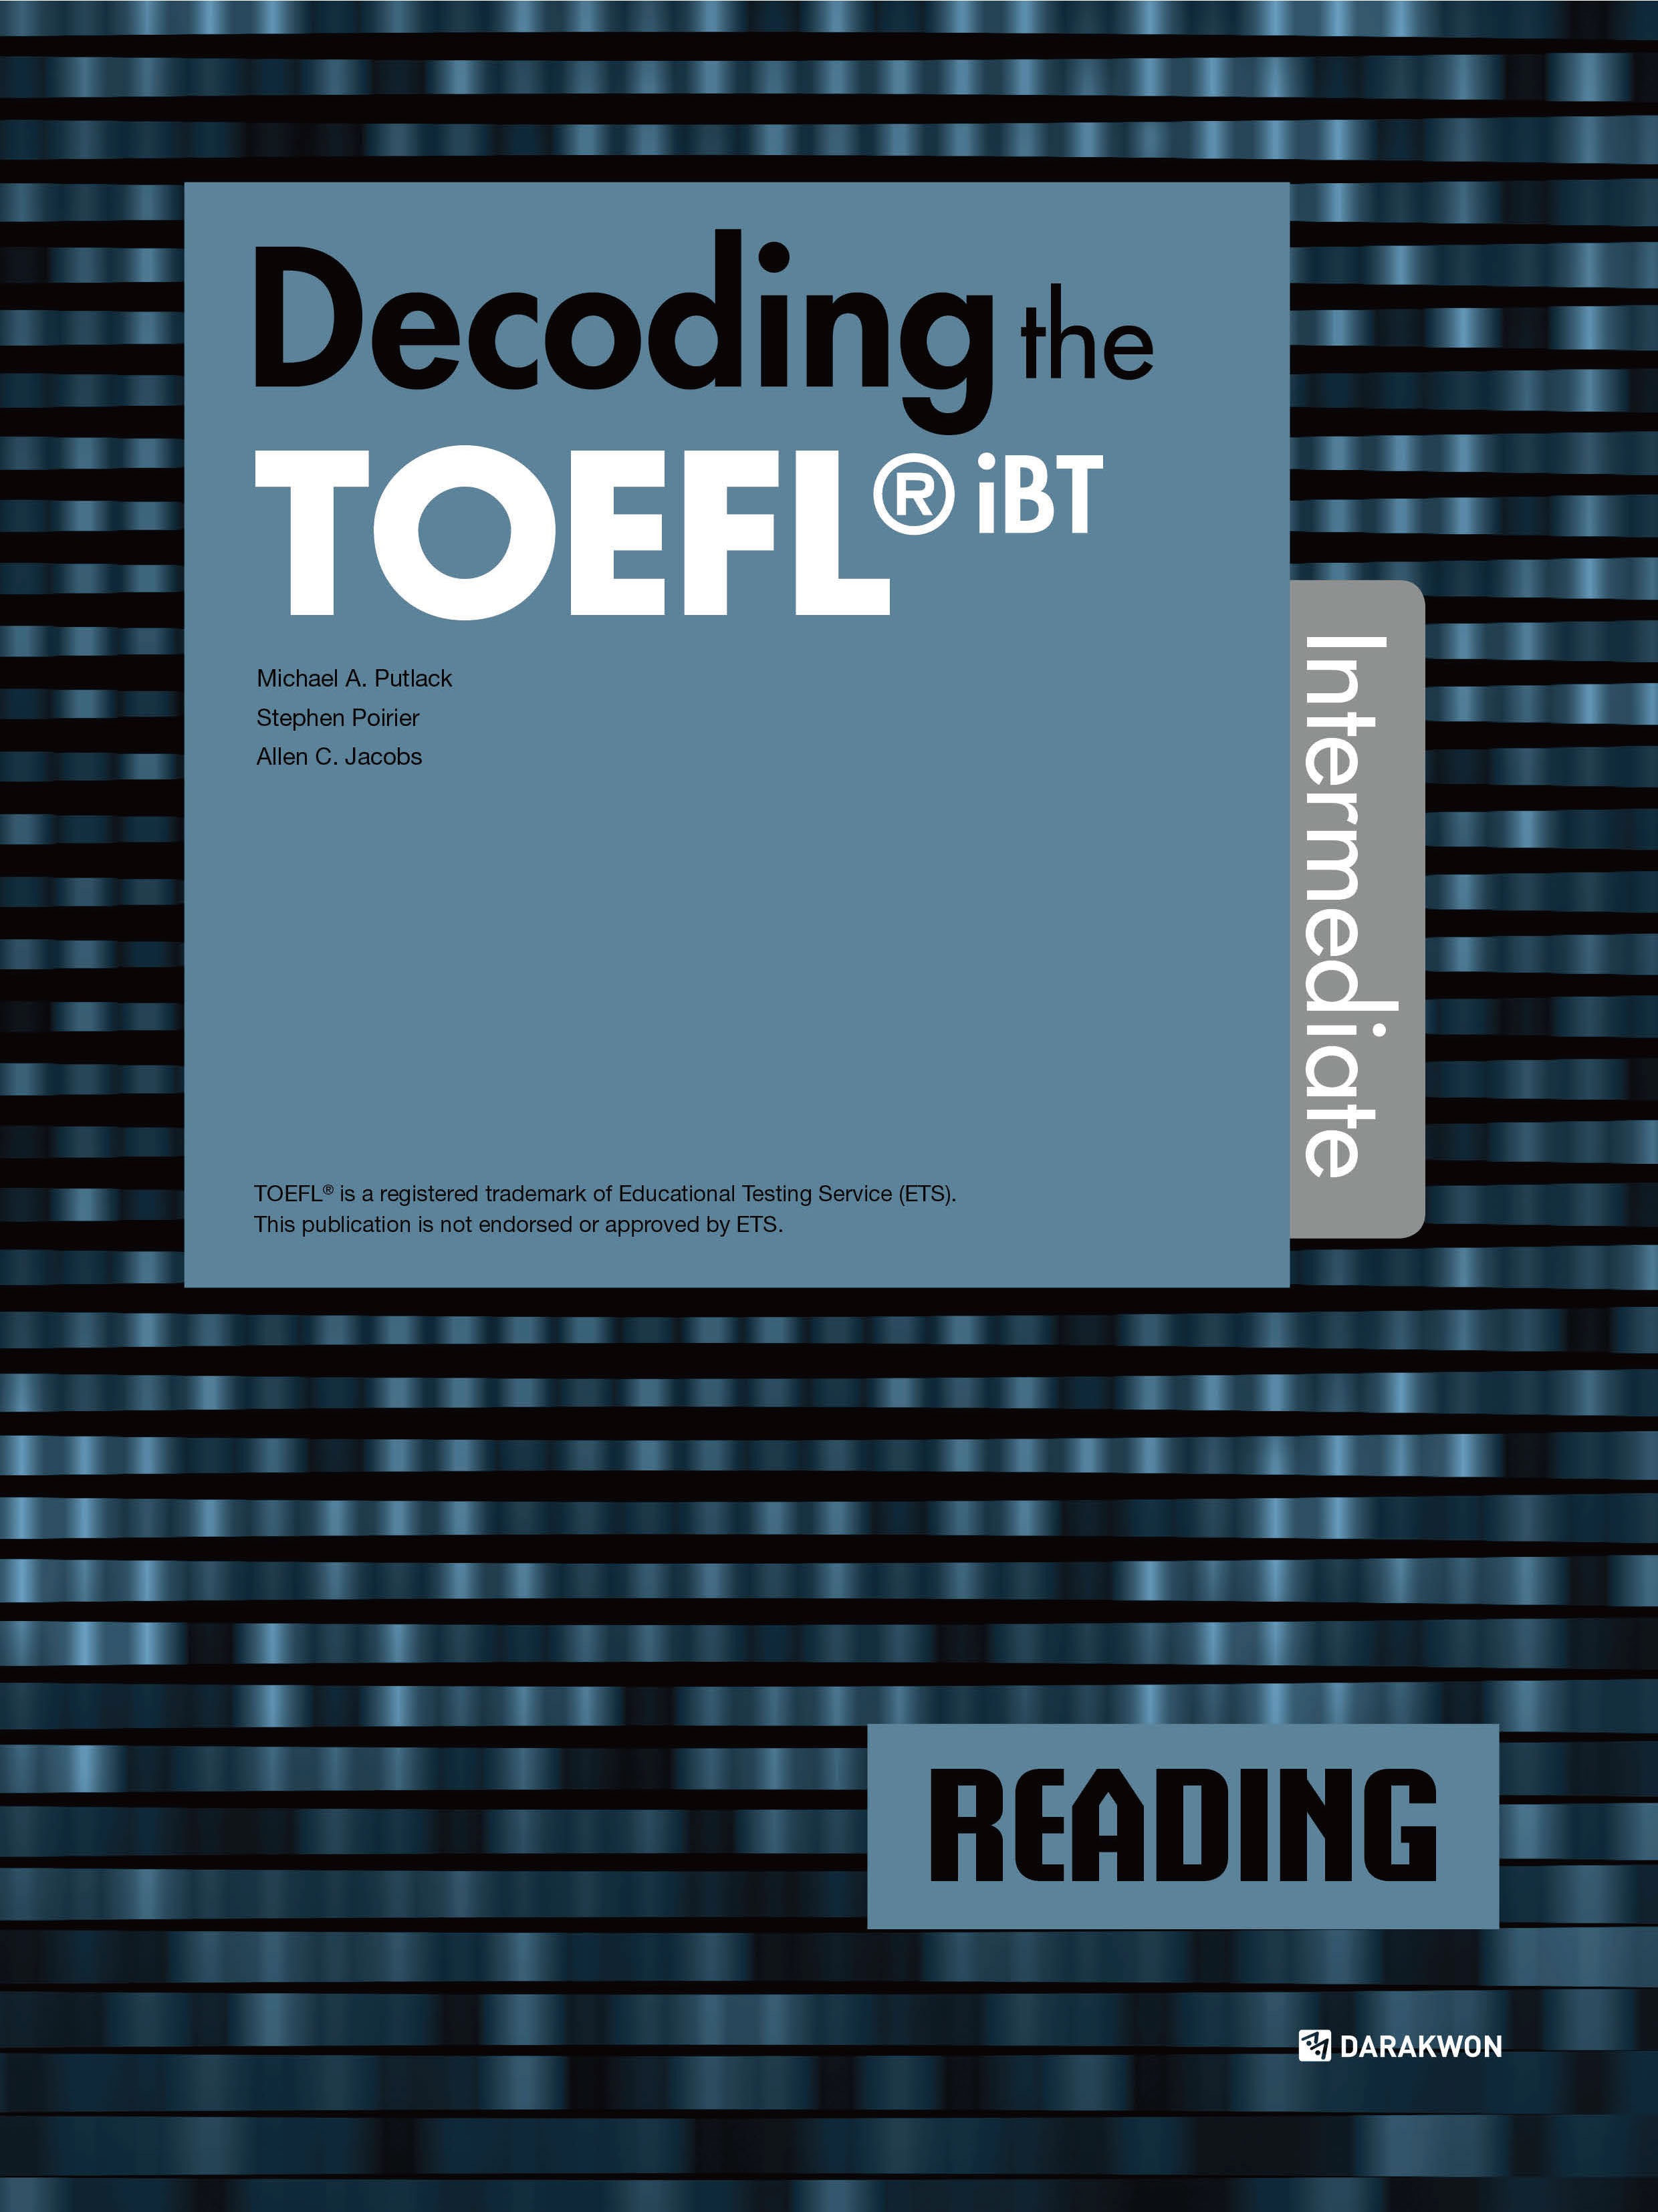 [Decoding the TOEFL iBT Actual Test] Decoding the TOEFL iBT READING Intermediate